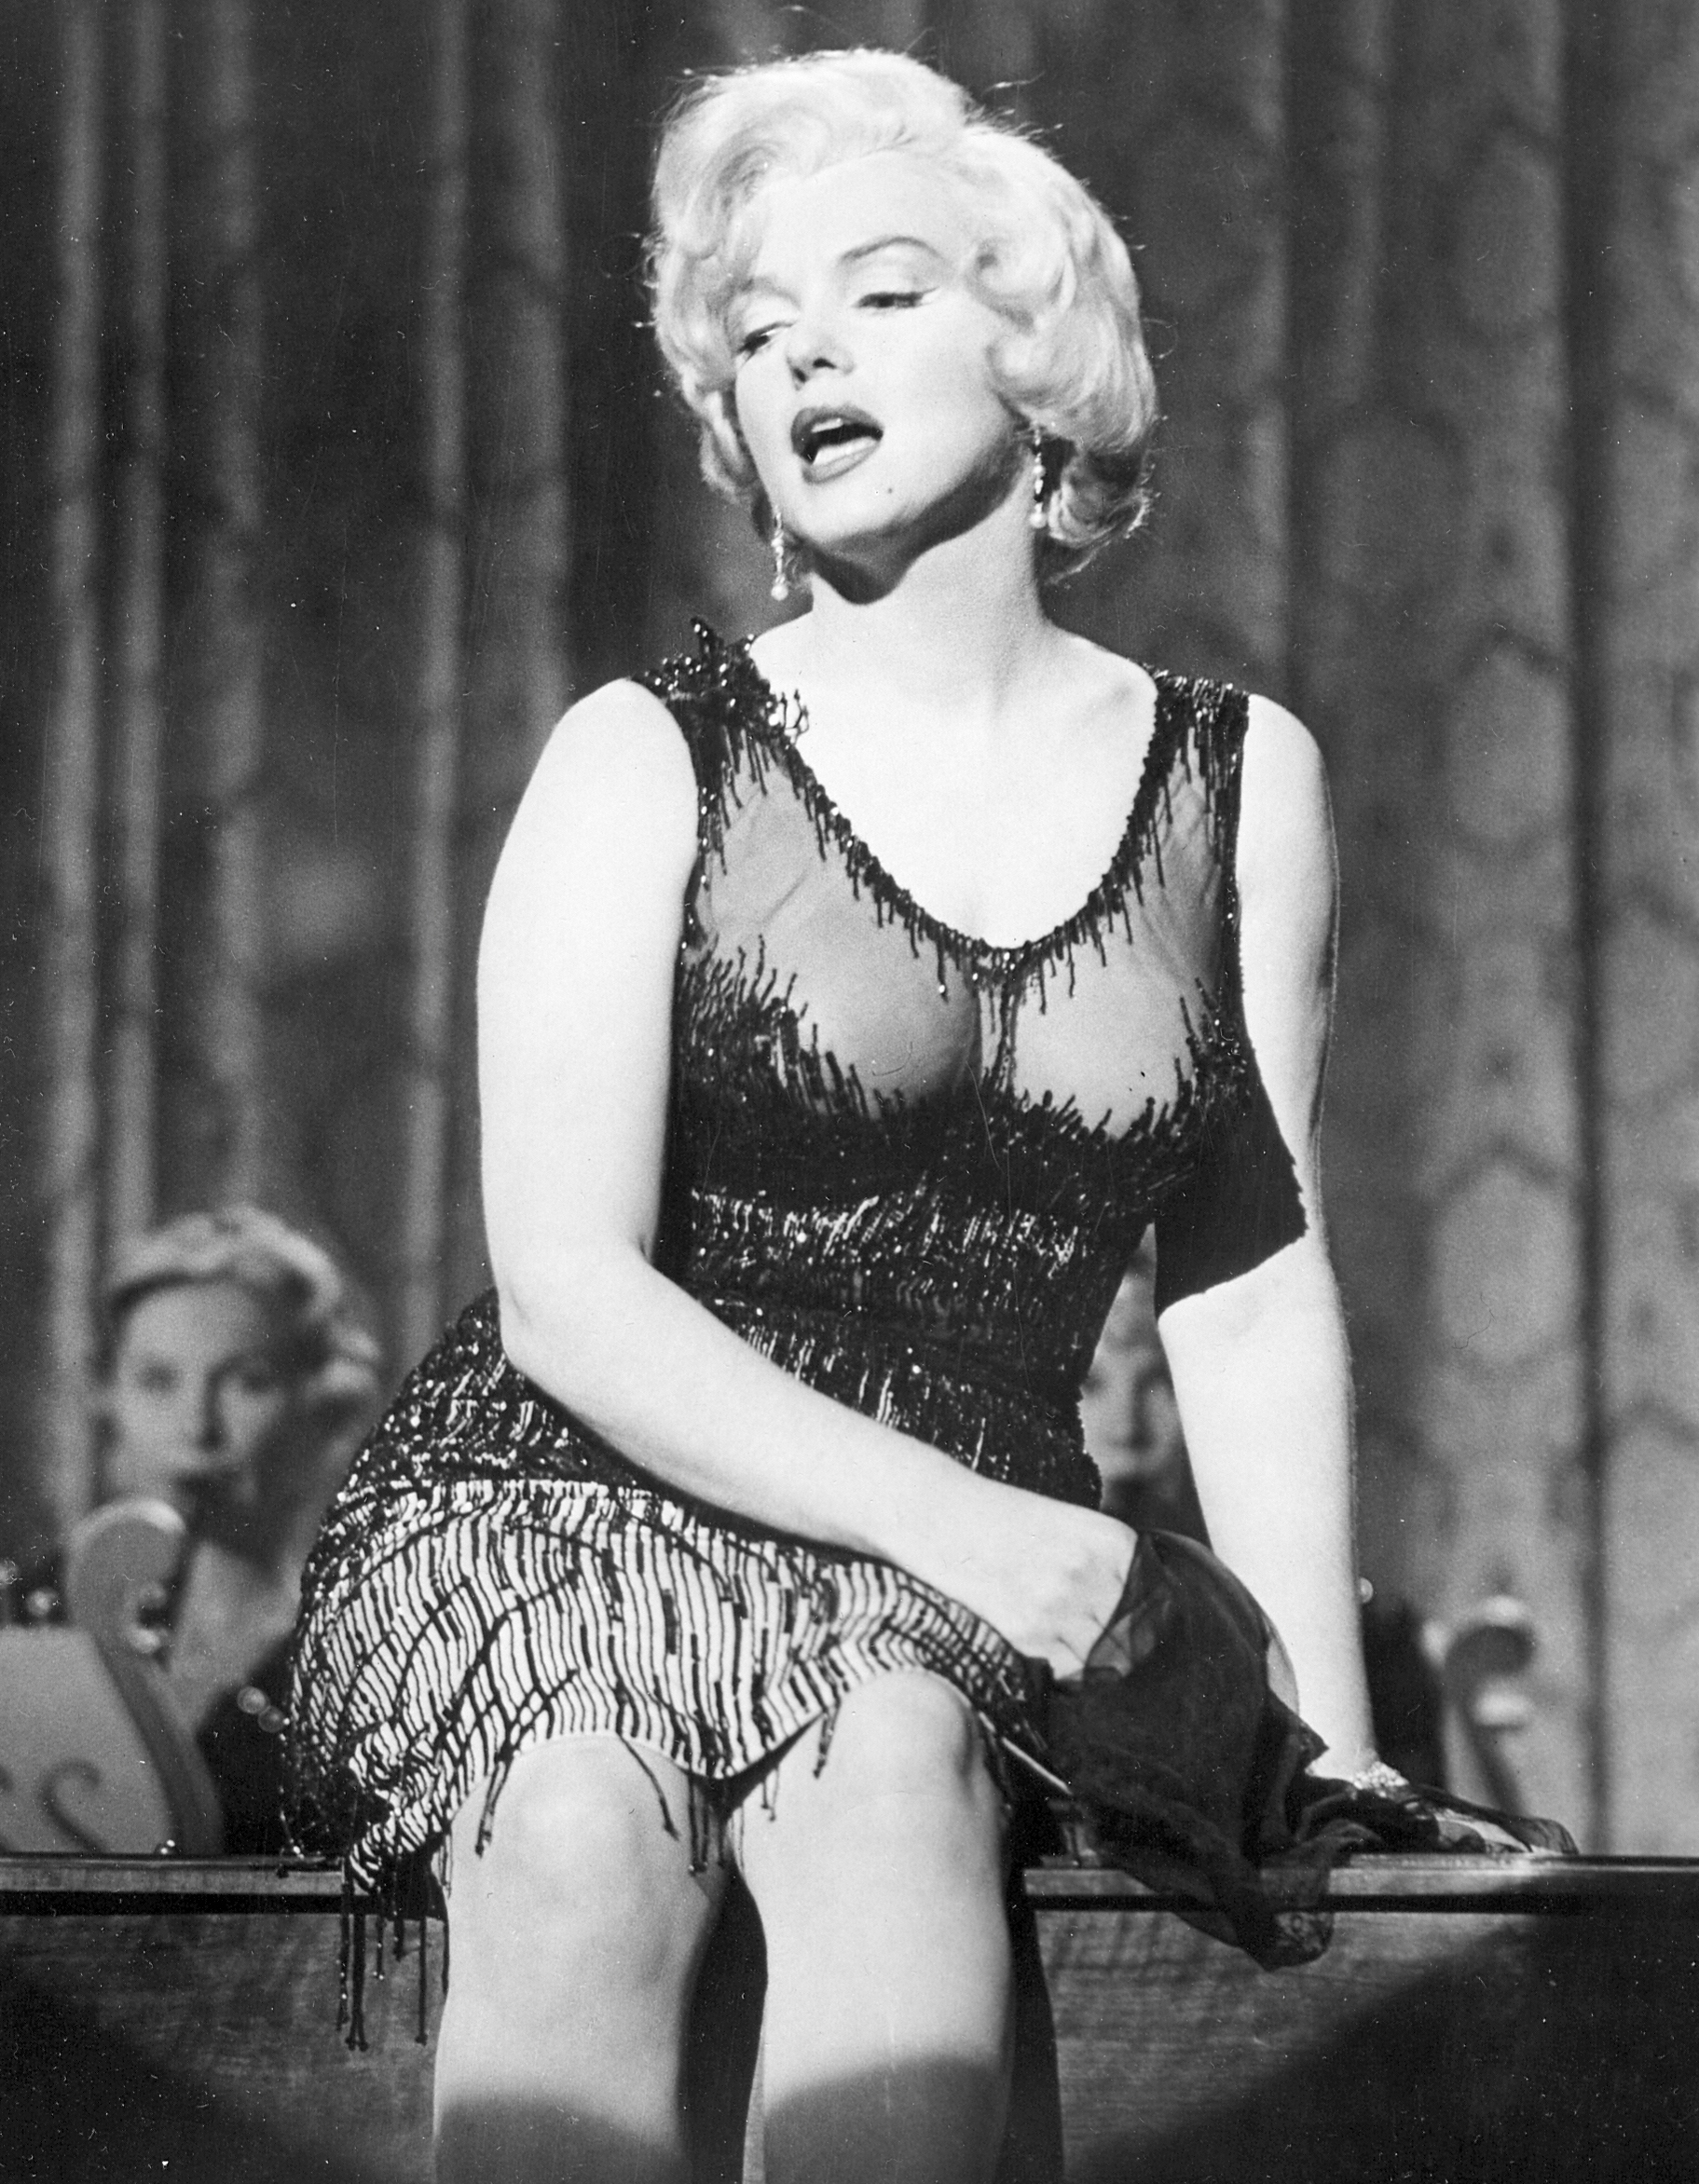 how to get a figure like marilyn monroe